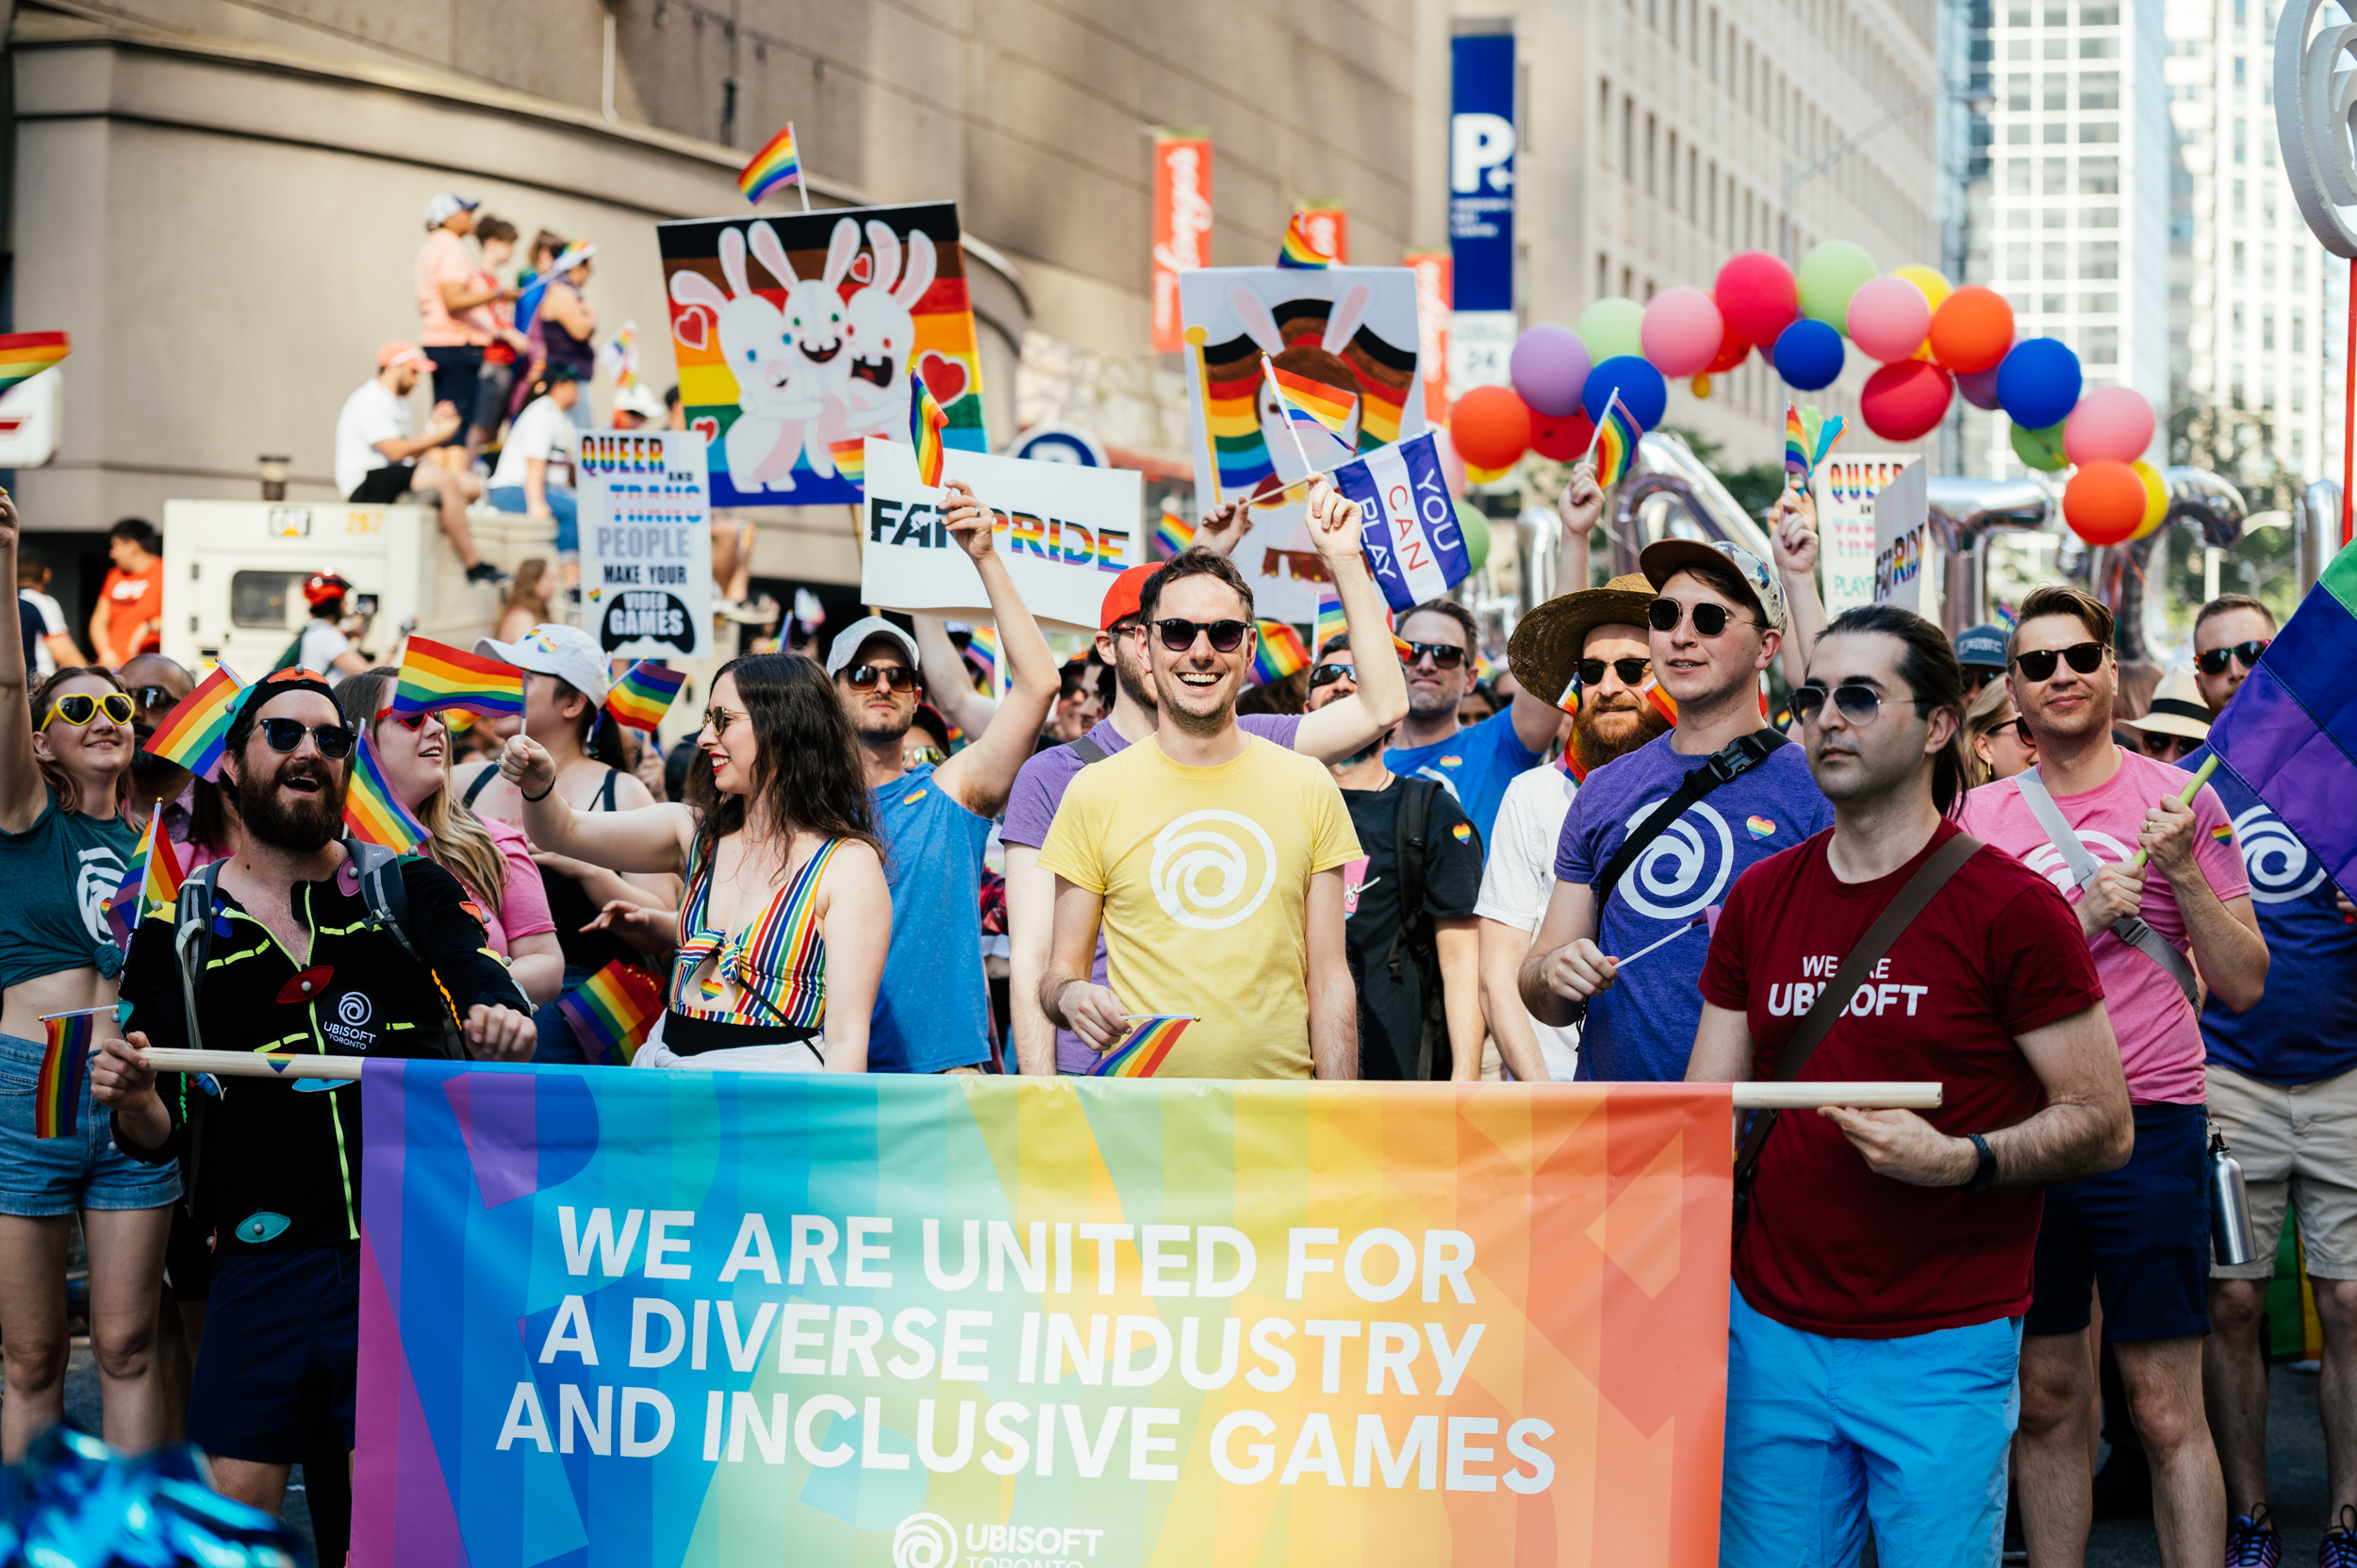 Happy Pride! A message from our team